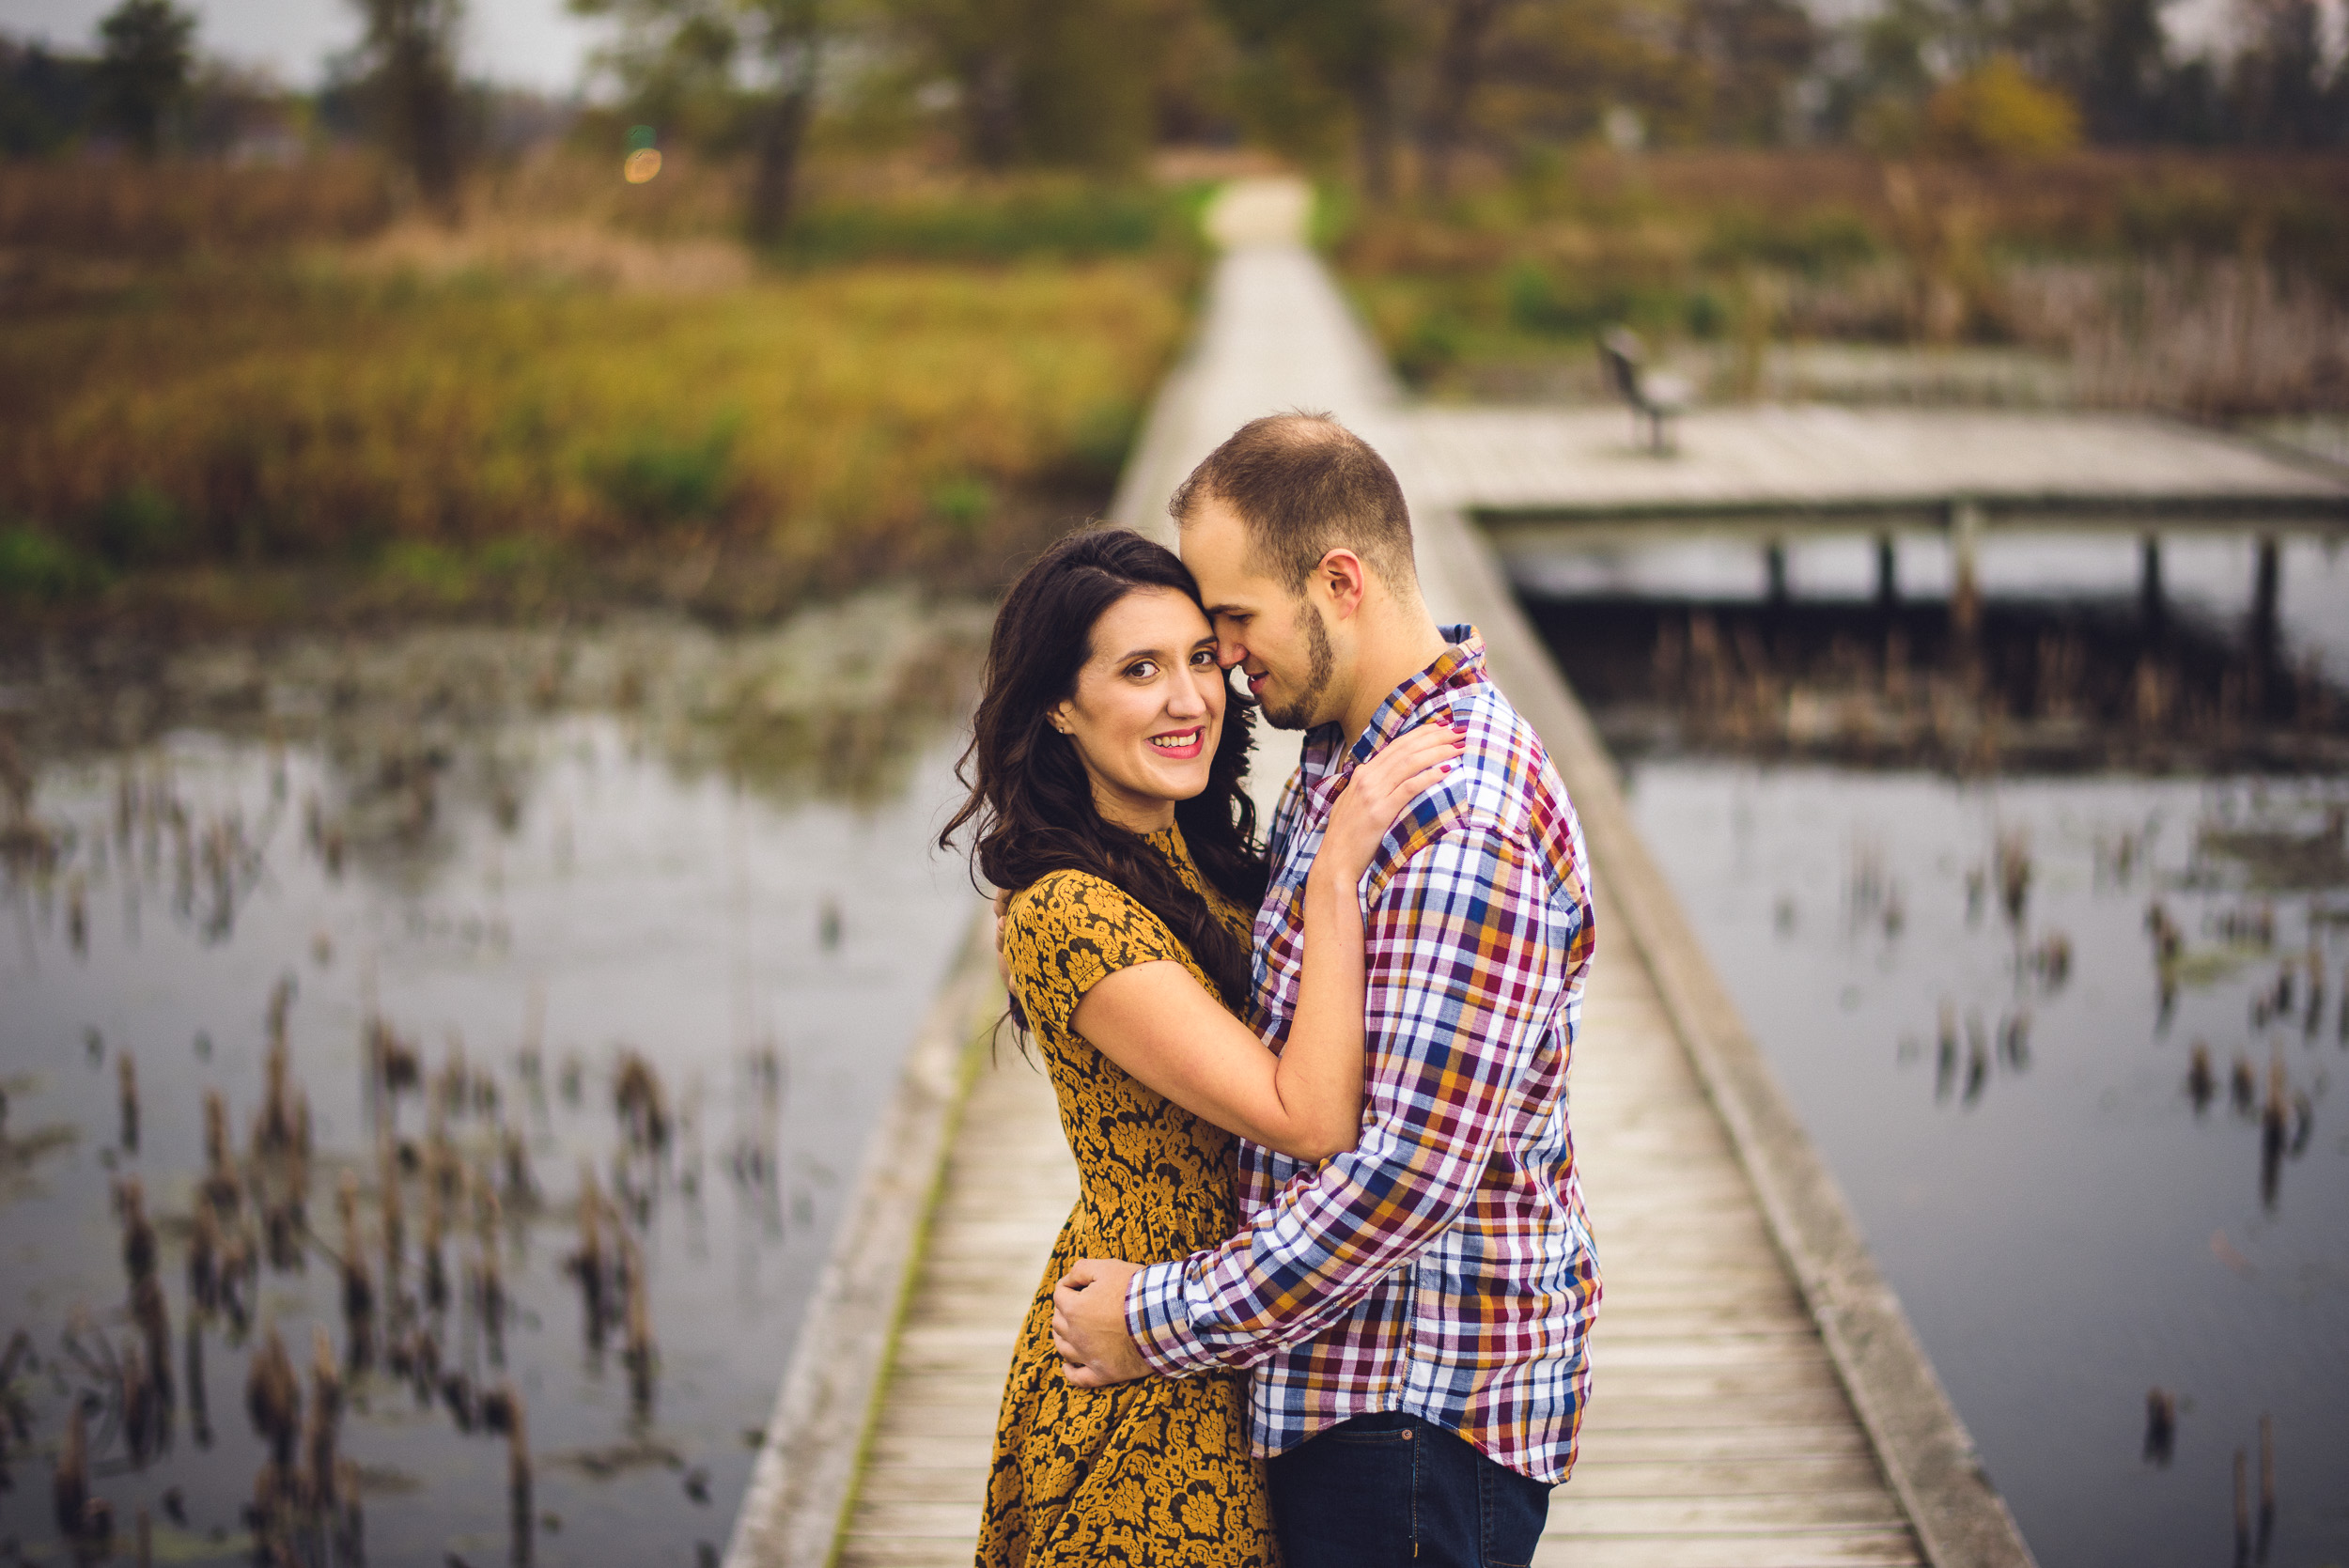 09-pier-so in-love-getting-married-next-year